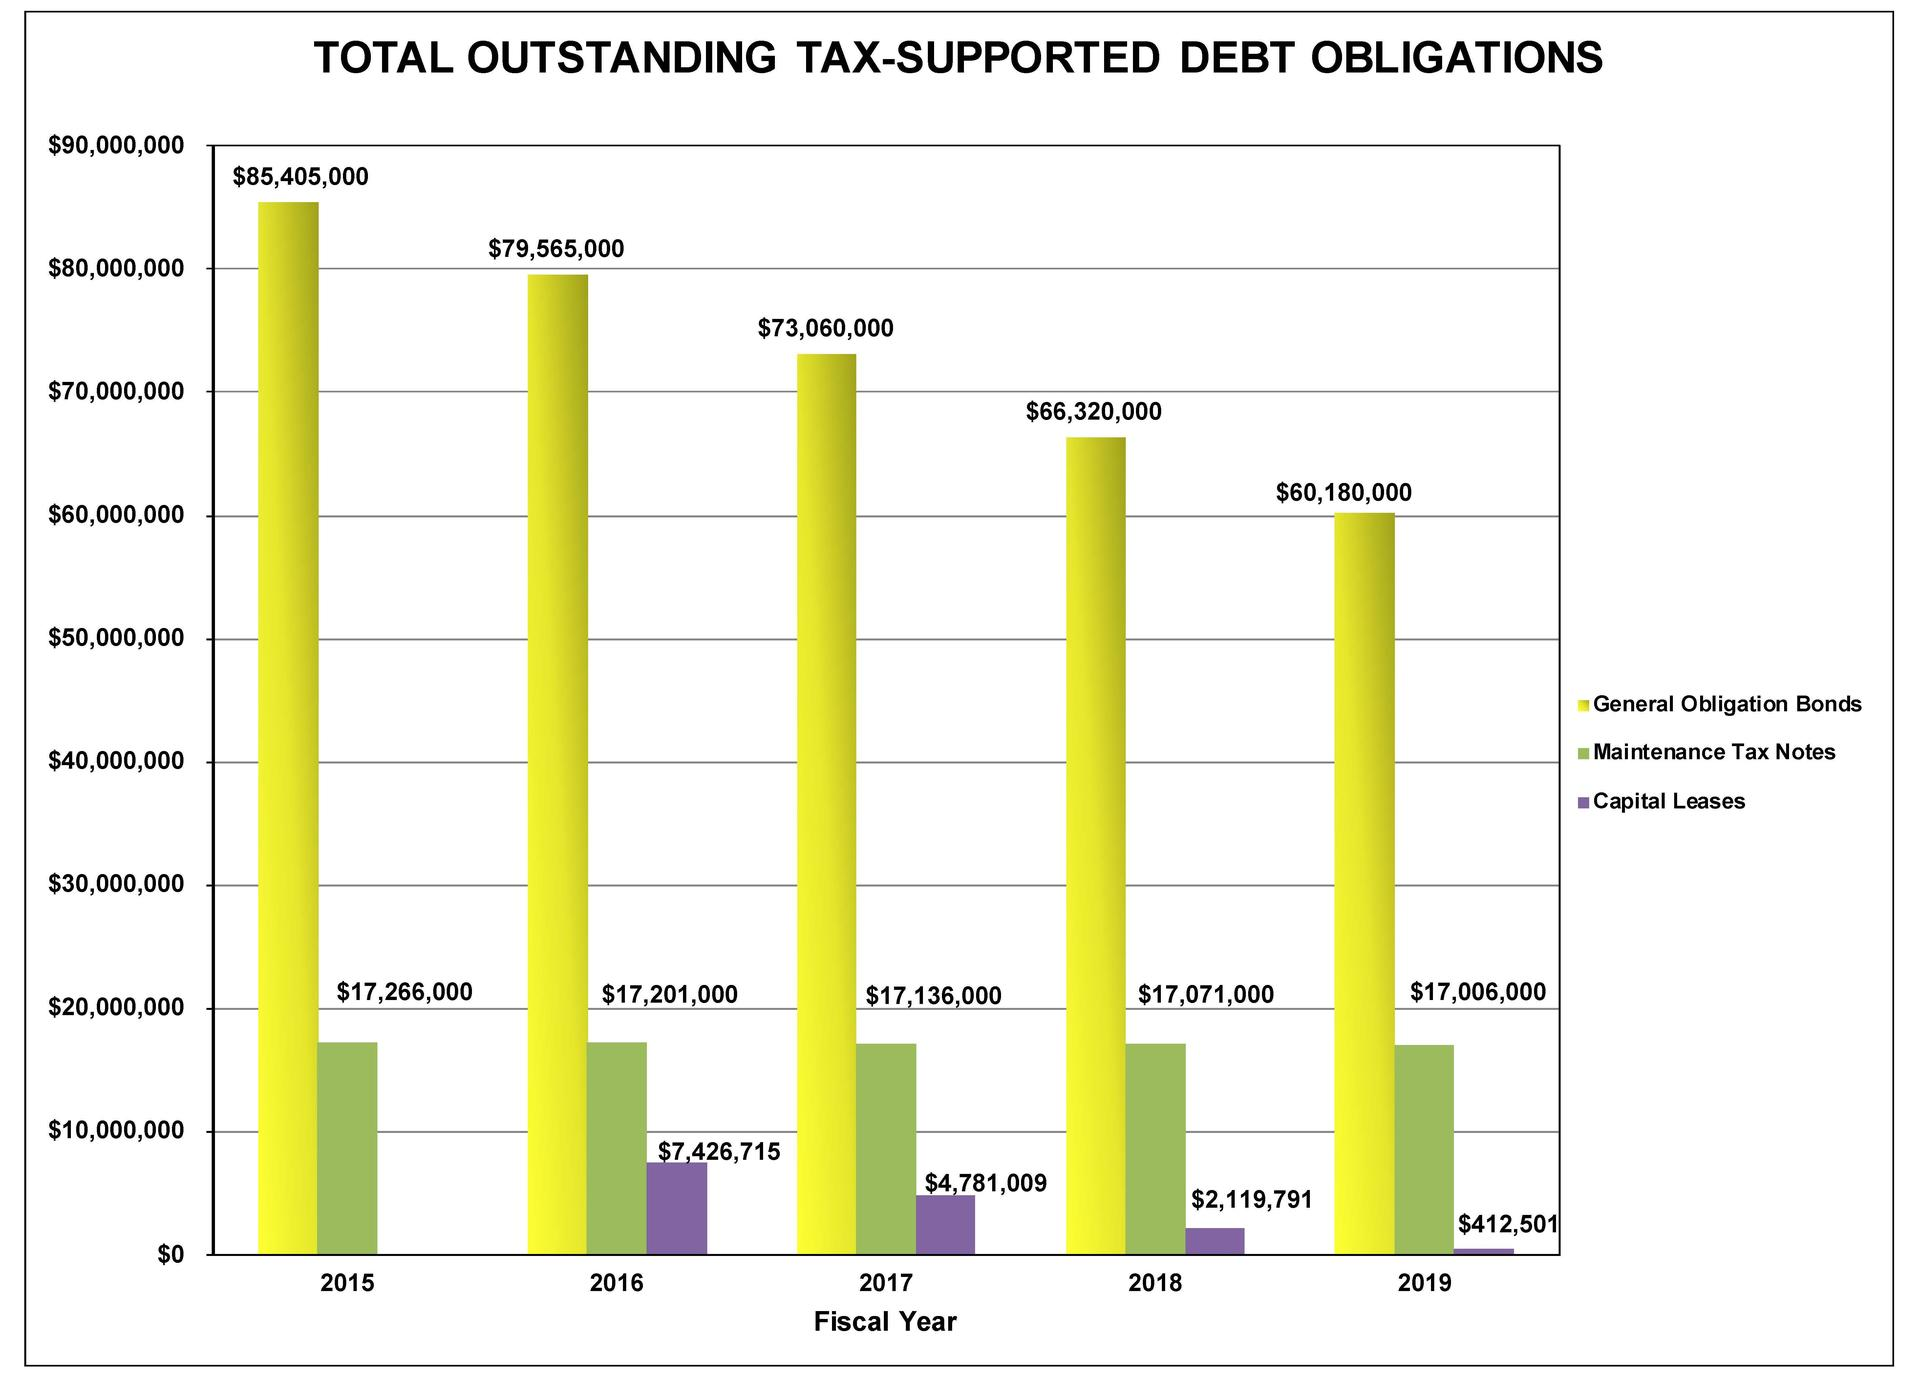 Tax Supported Debt Obligations